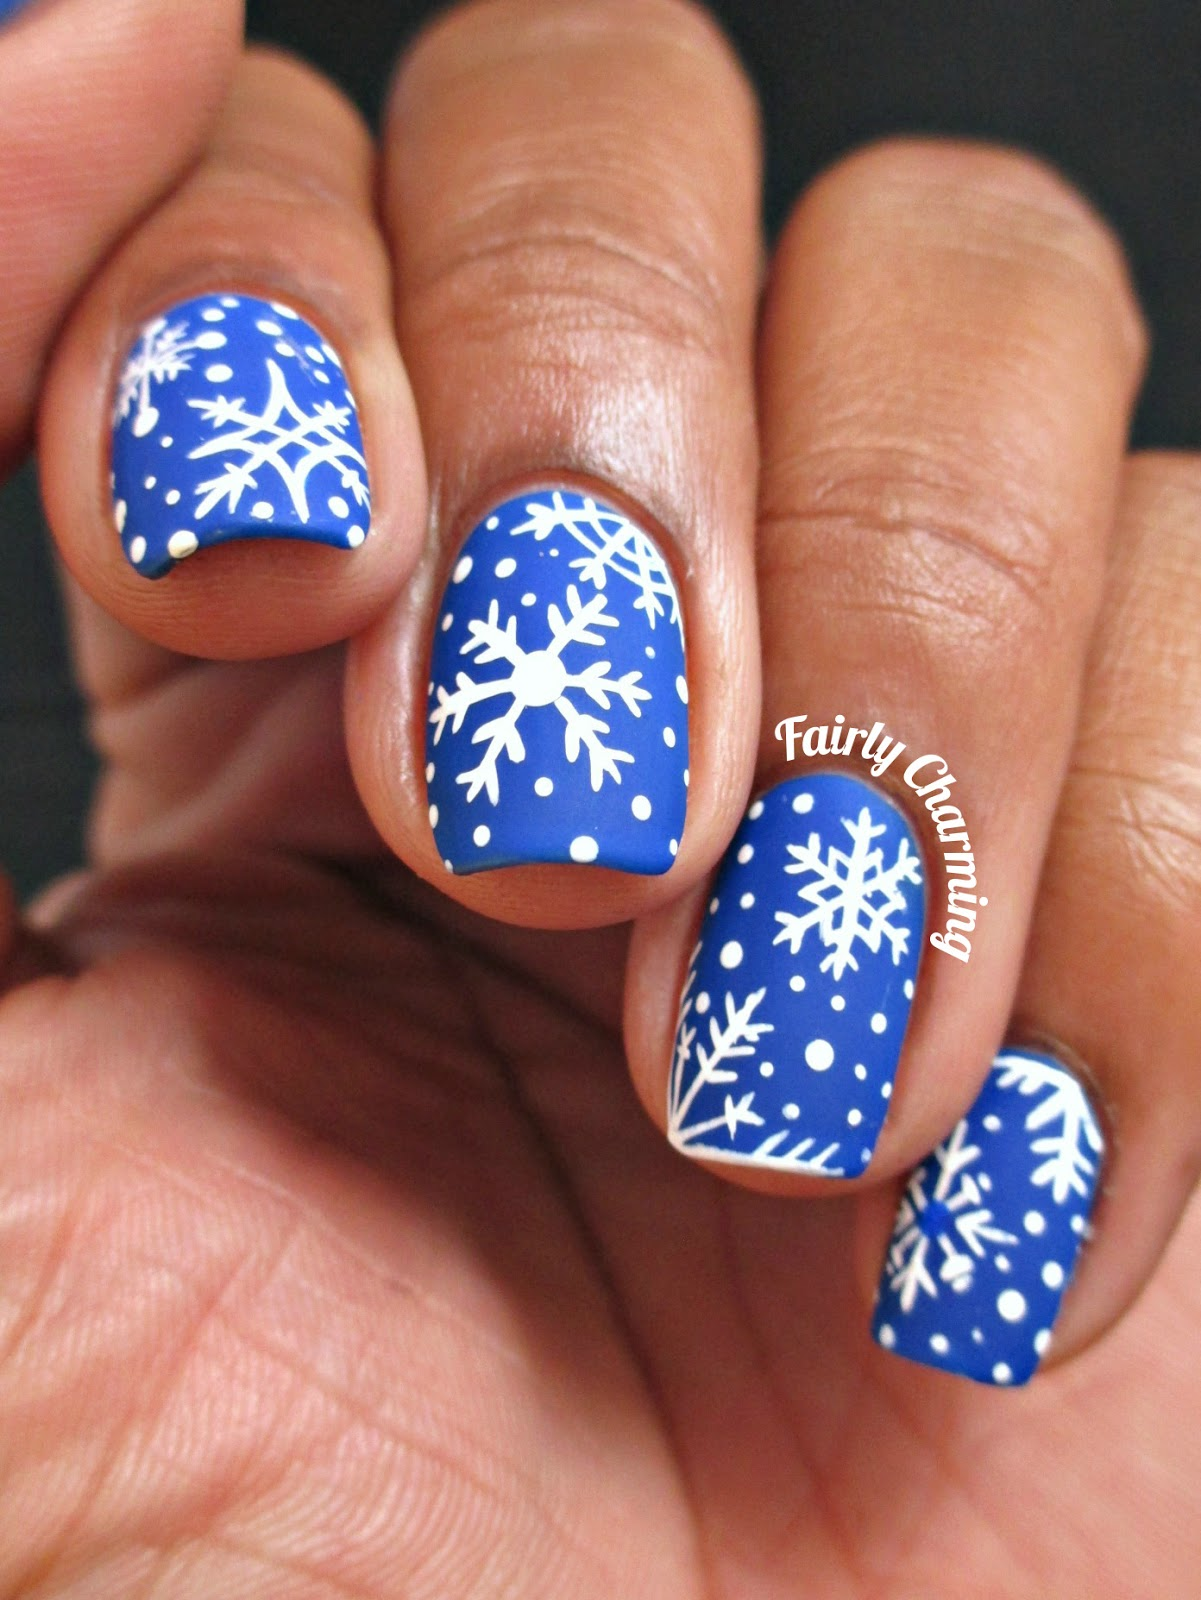 Fairly charming 12 manis of christmas snowflakes 12 manis of christmas snowflakes prinsesfo Image collections